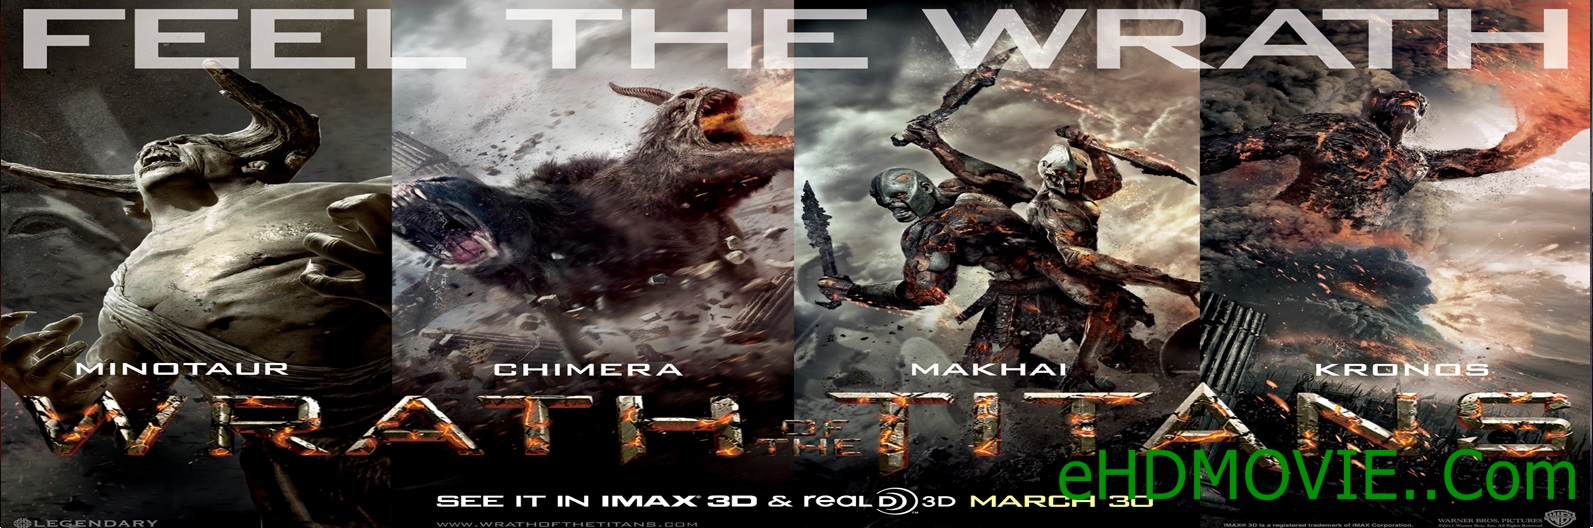 Wrath Of The Titans 2012 Full Movie Dual Audio [Hindi – English] 720p - 480p ORG BRRip 350MB - 750MB - 1.1GB ESubs Free Download